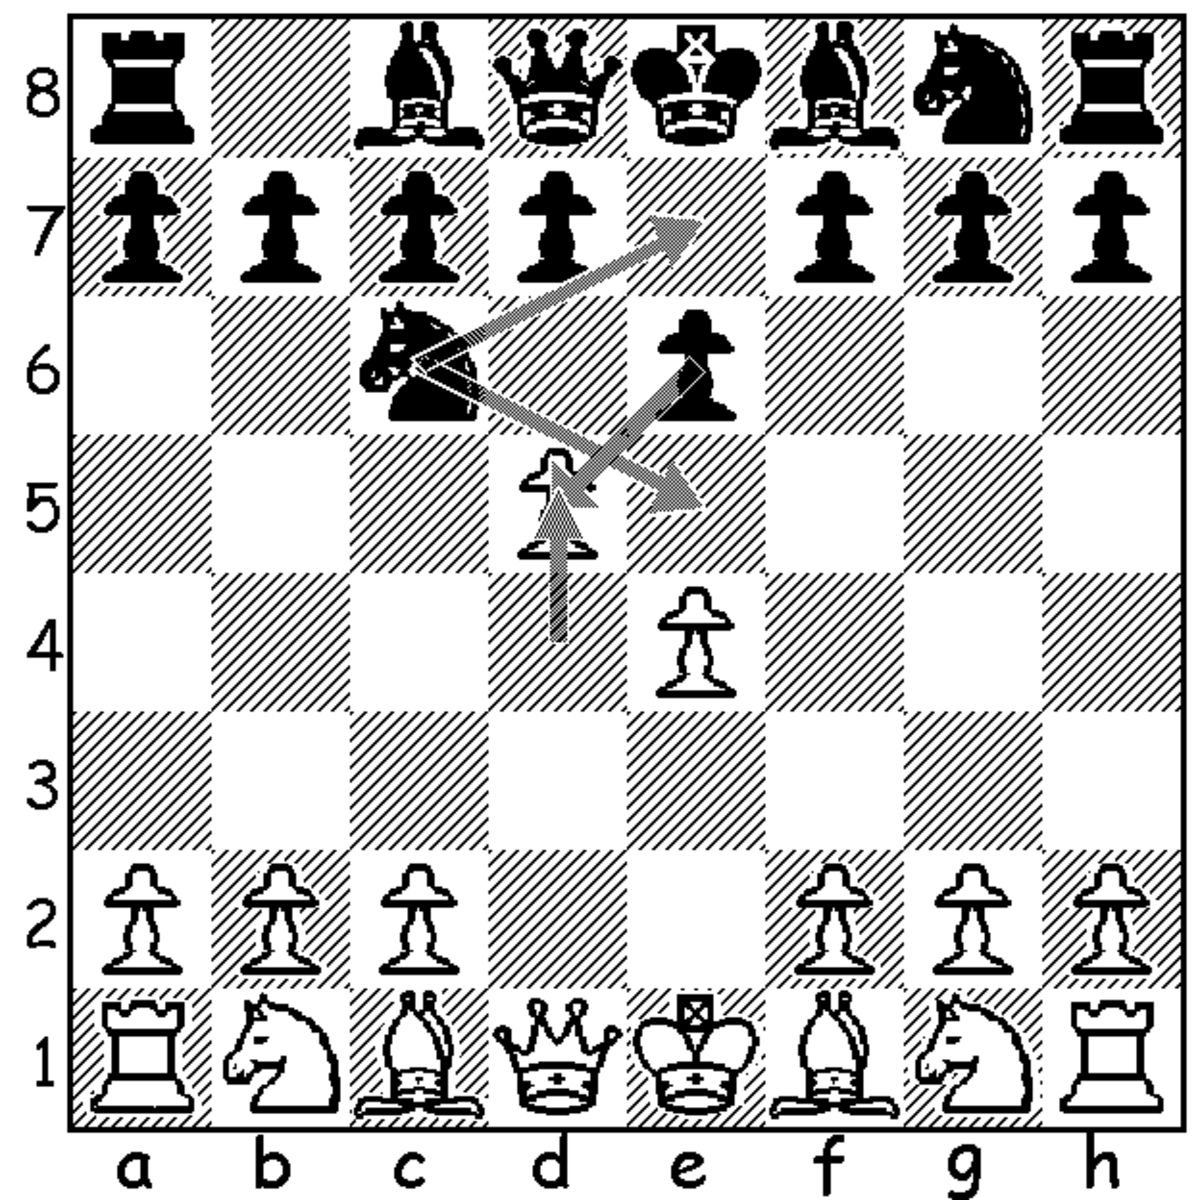 Black's three most reasonable third move responses to 3.d5. They are 3...Ne5, 3...Ne7, and 3...exd5.